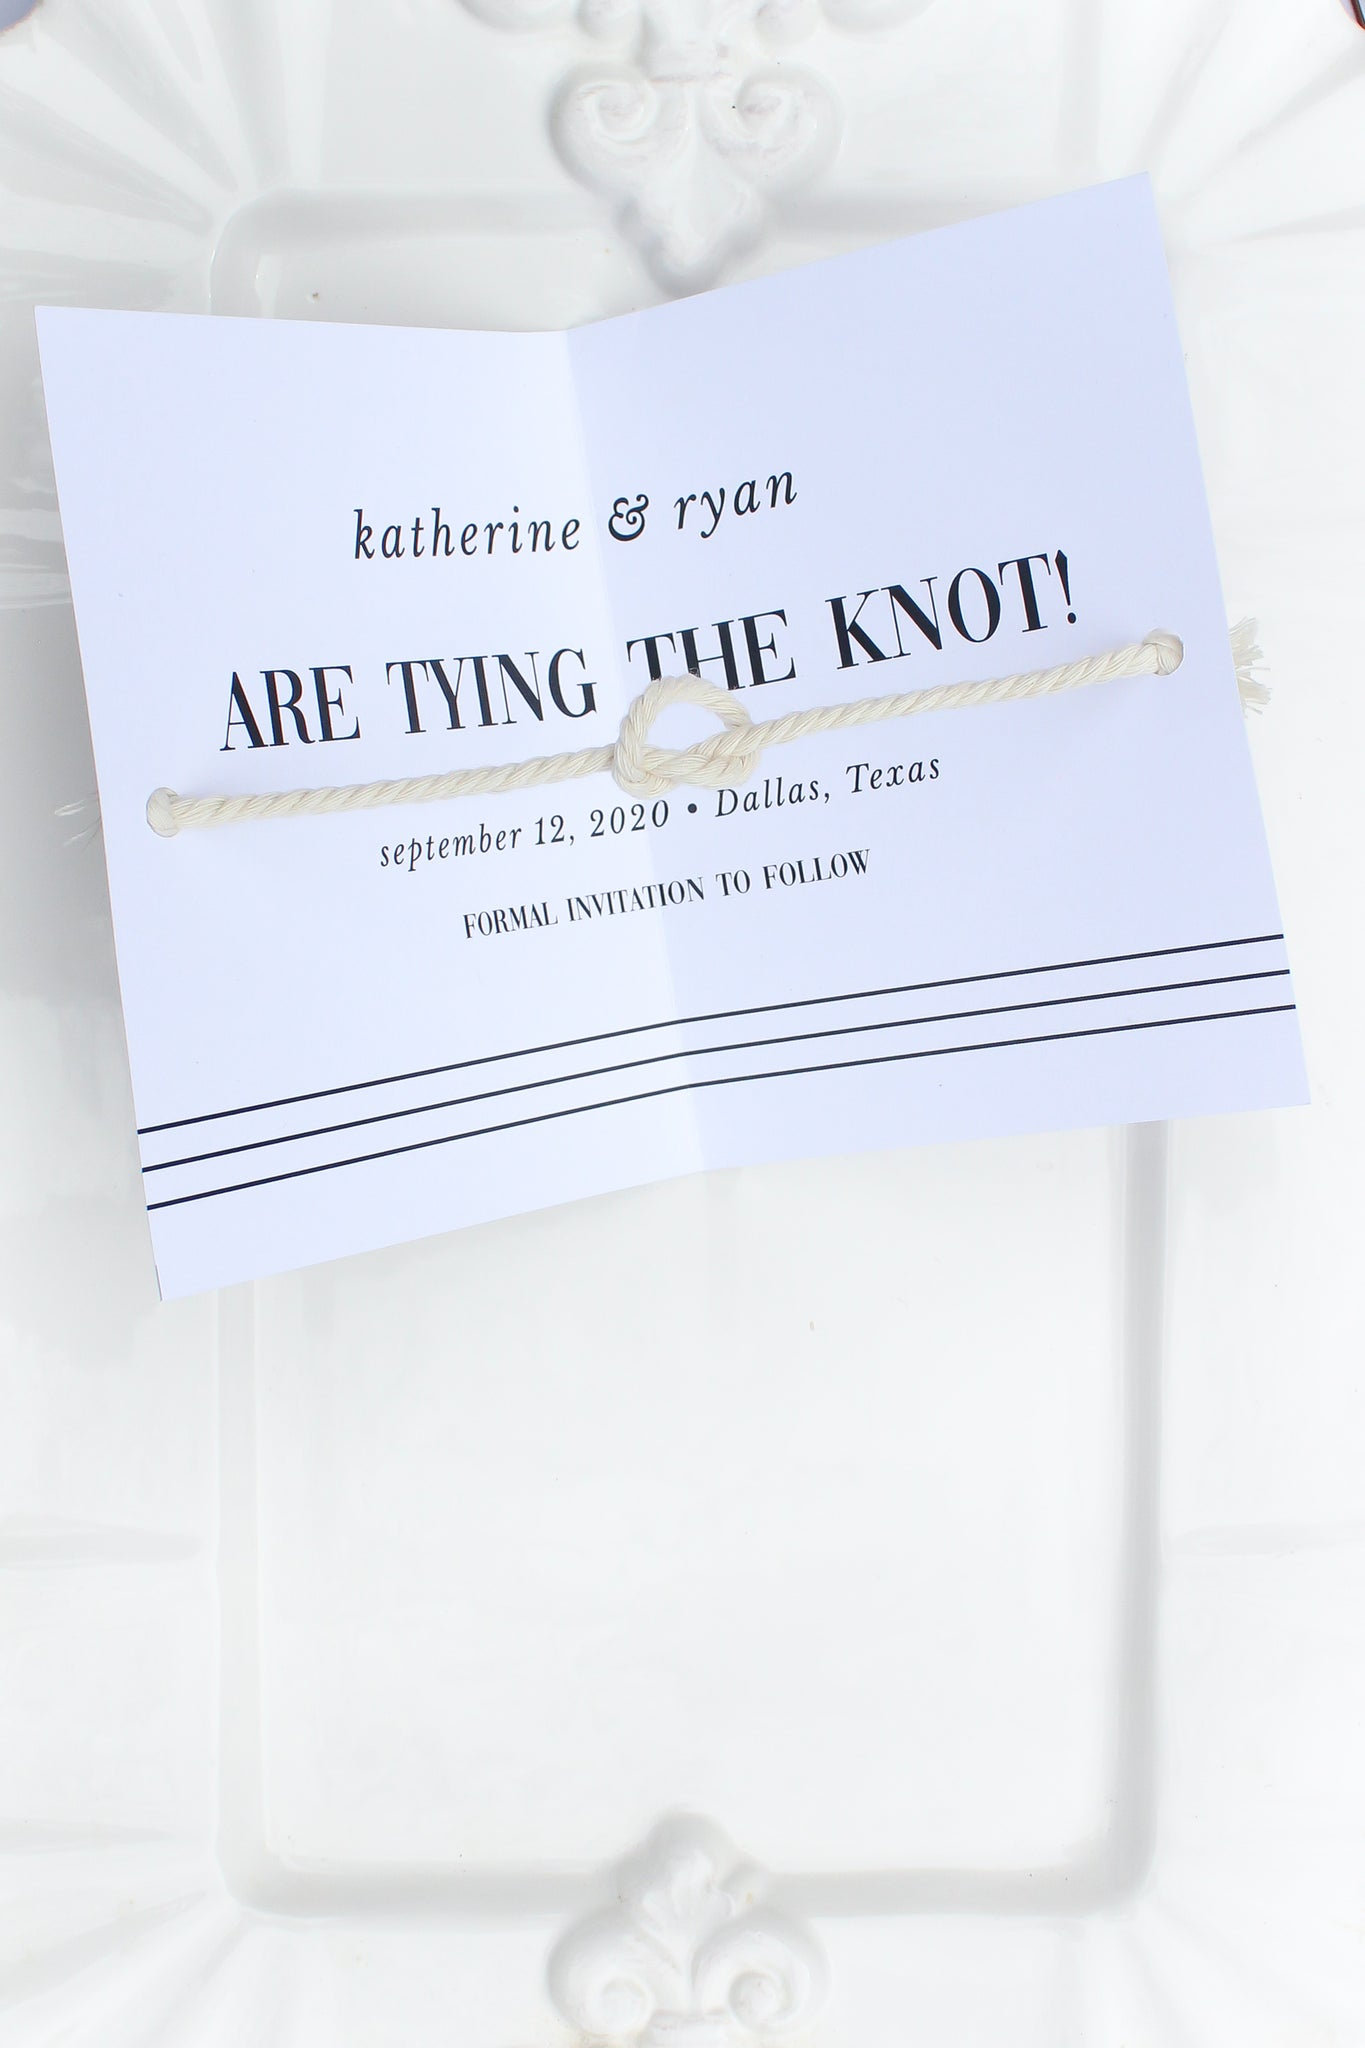 Bridgehampton Tie the Knot Save the Dates